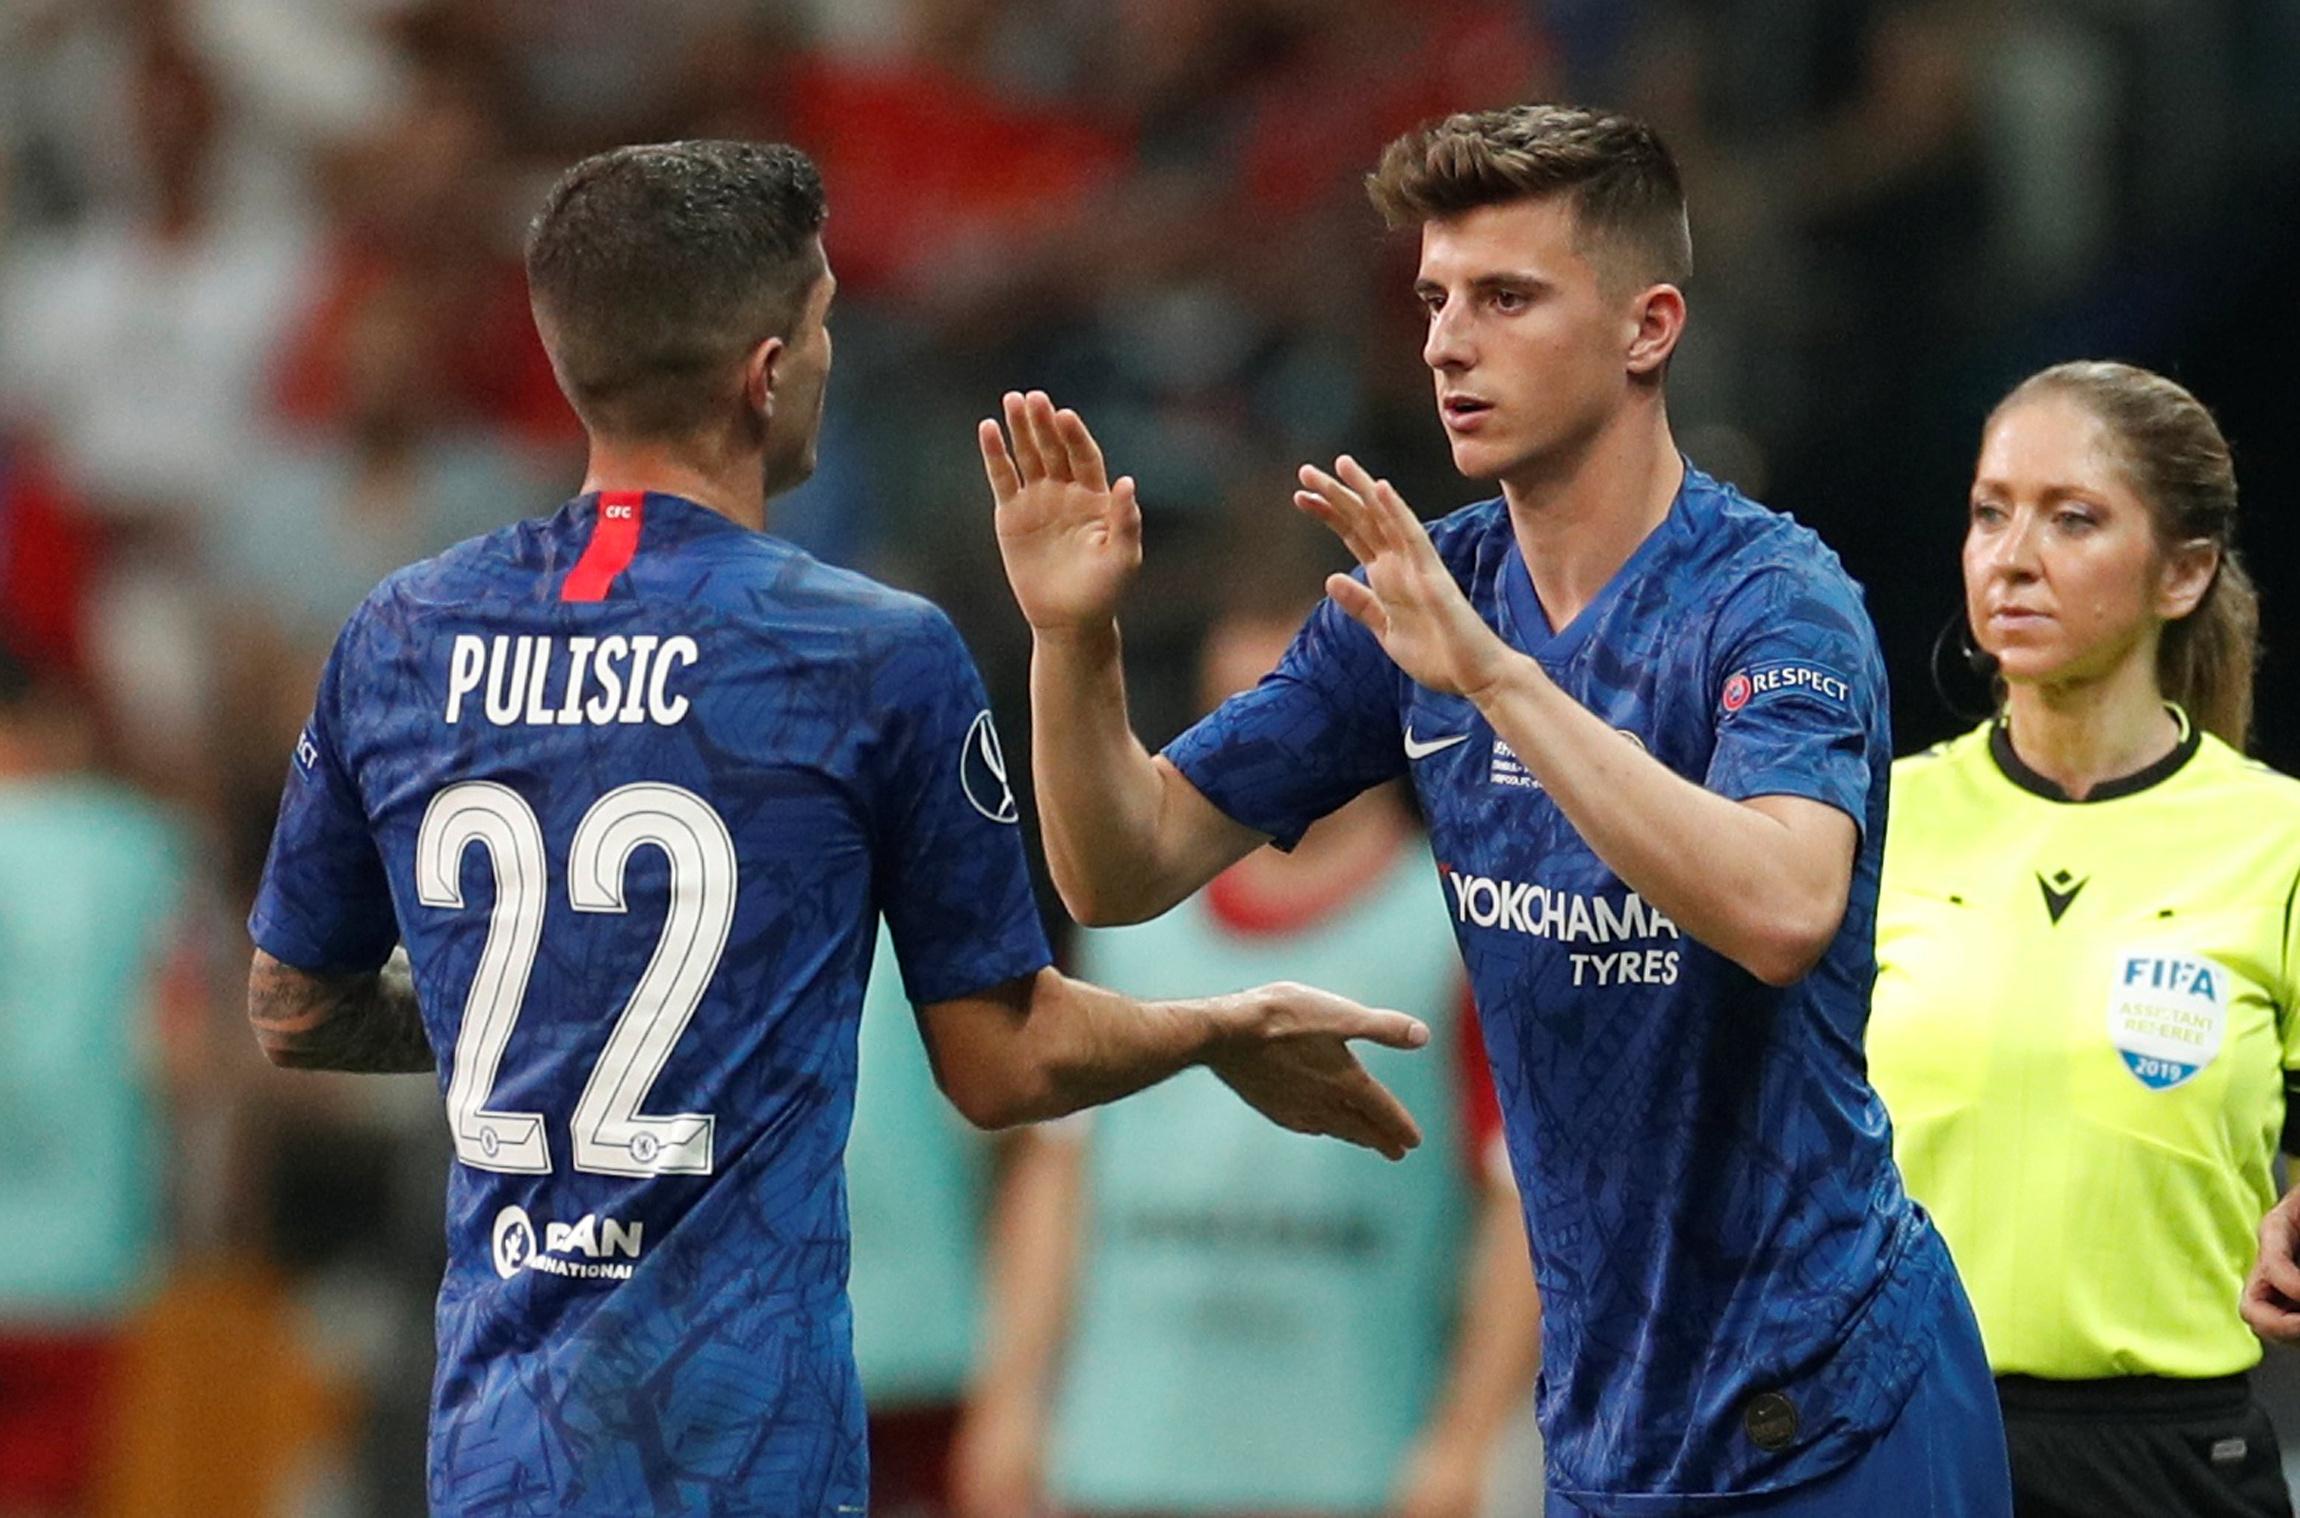 Chelsea youngster frustrated over lack of playing time